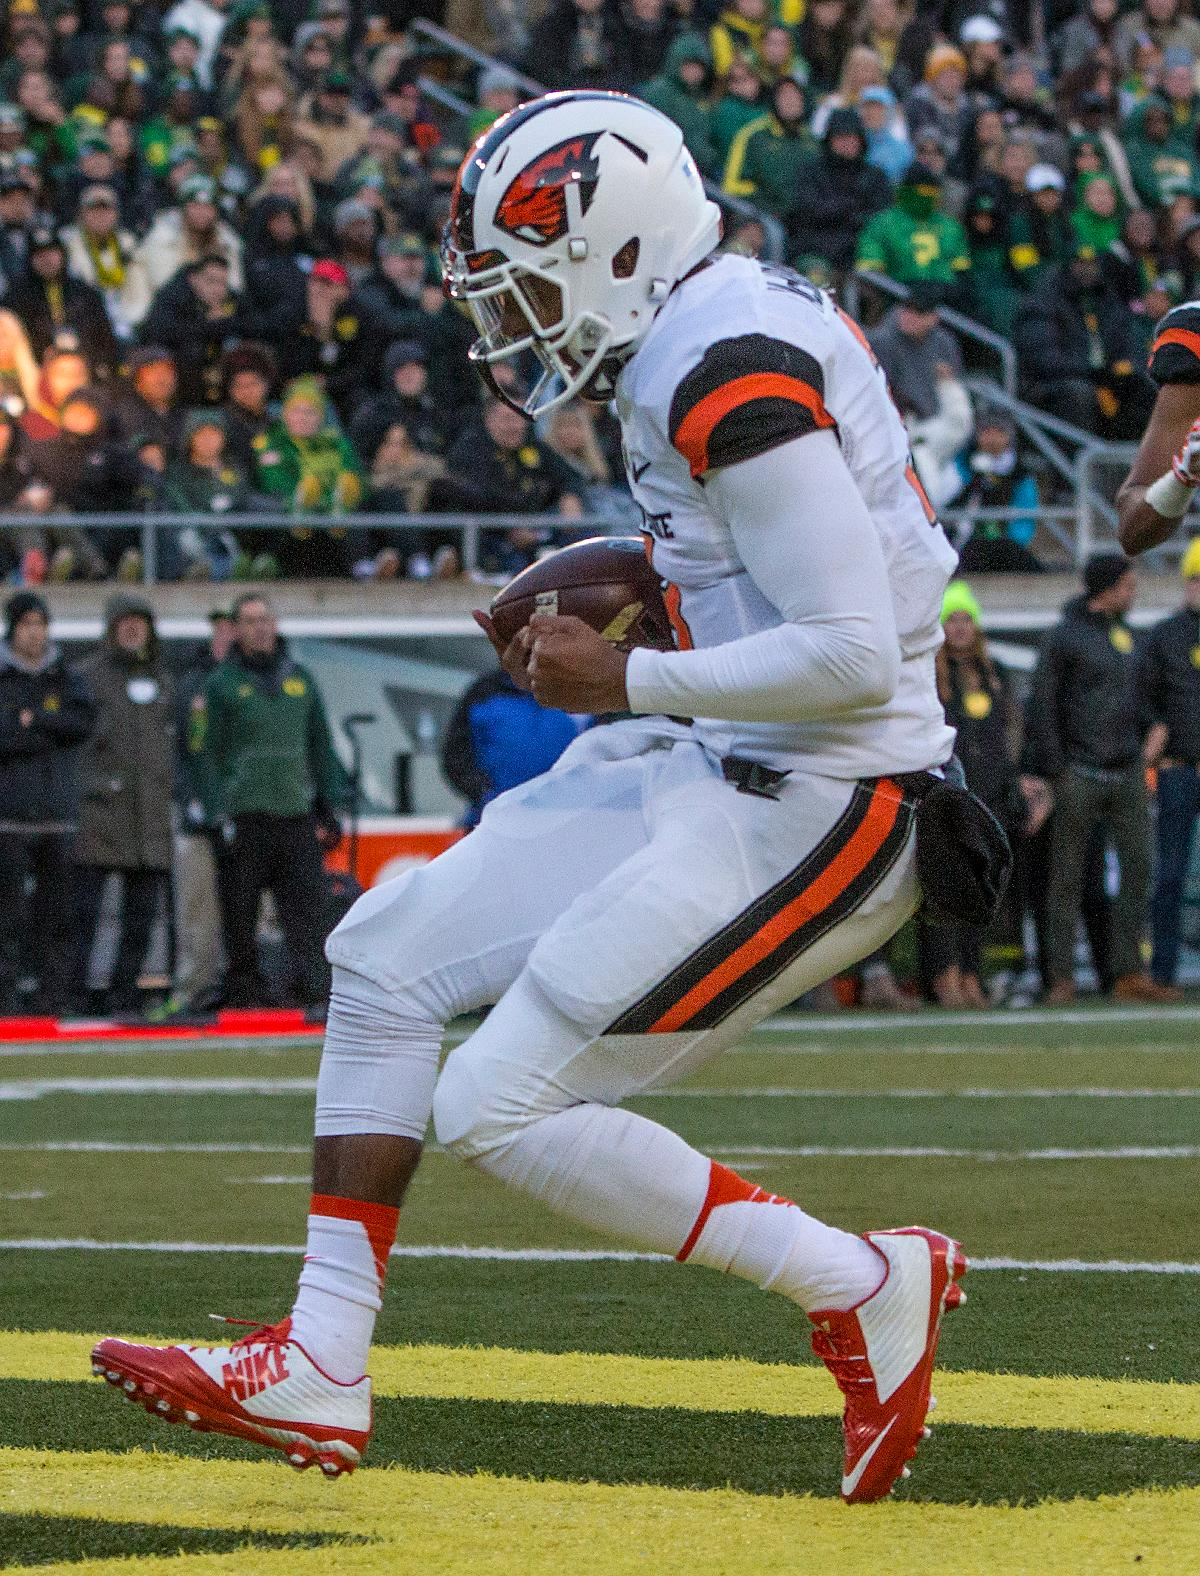 Oregon State Beavers Marcus McMaryion (#3) scores a touchdown in the second half. The Oregon Ducks beat the Oregon State Beavers 52-42 in the 119th Civil War for the eighth year in a row at Autzen Stadium on Friday afternoon. Katie Pietzold, Oregon News Lab